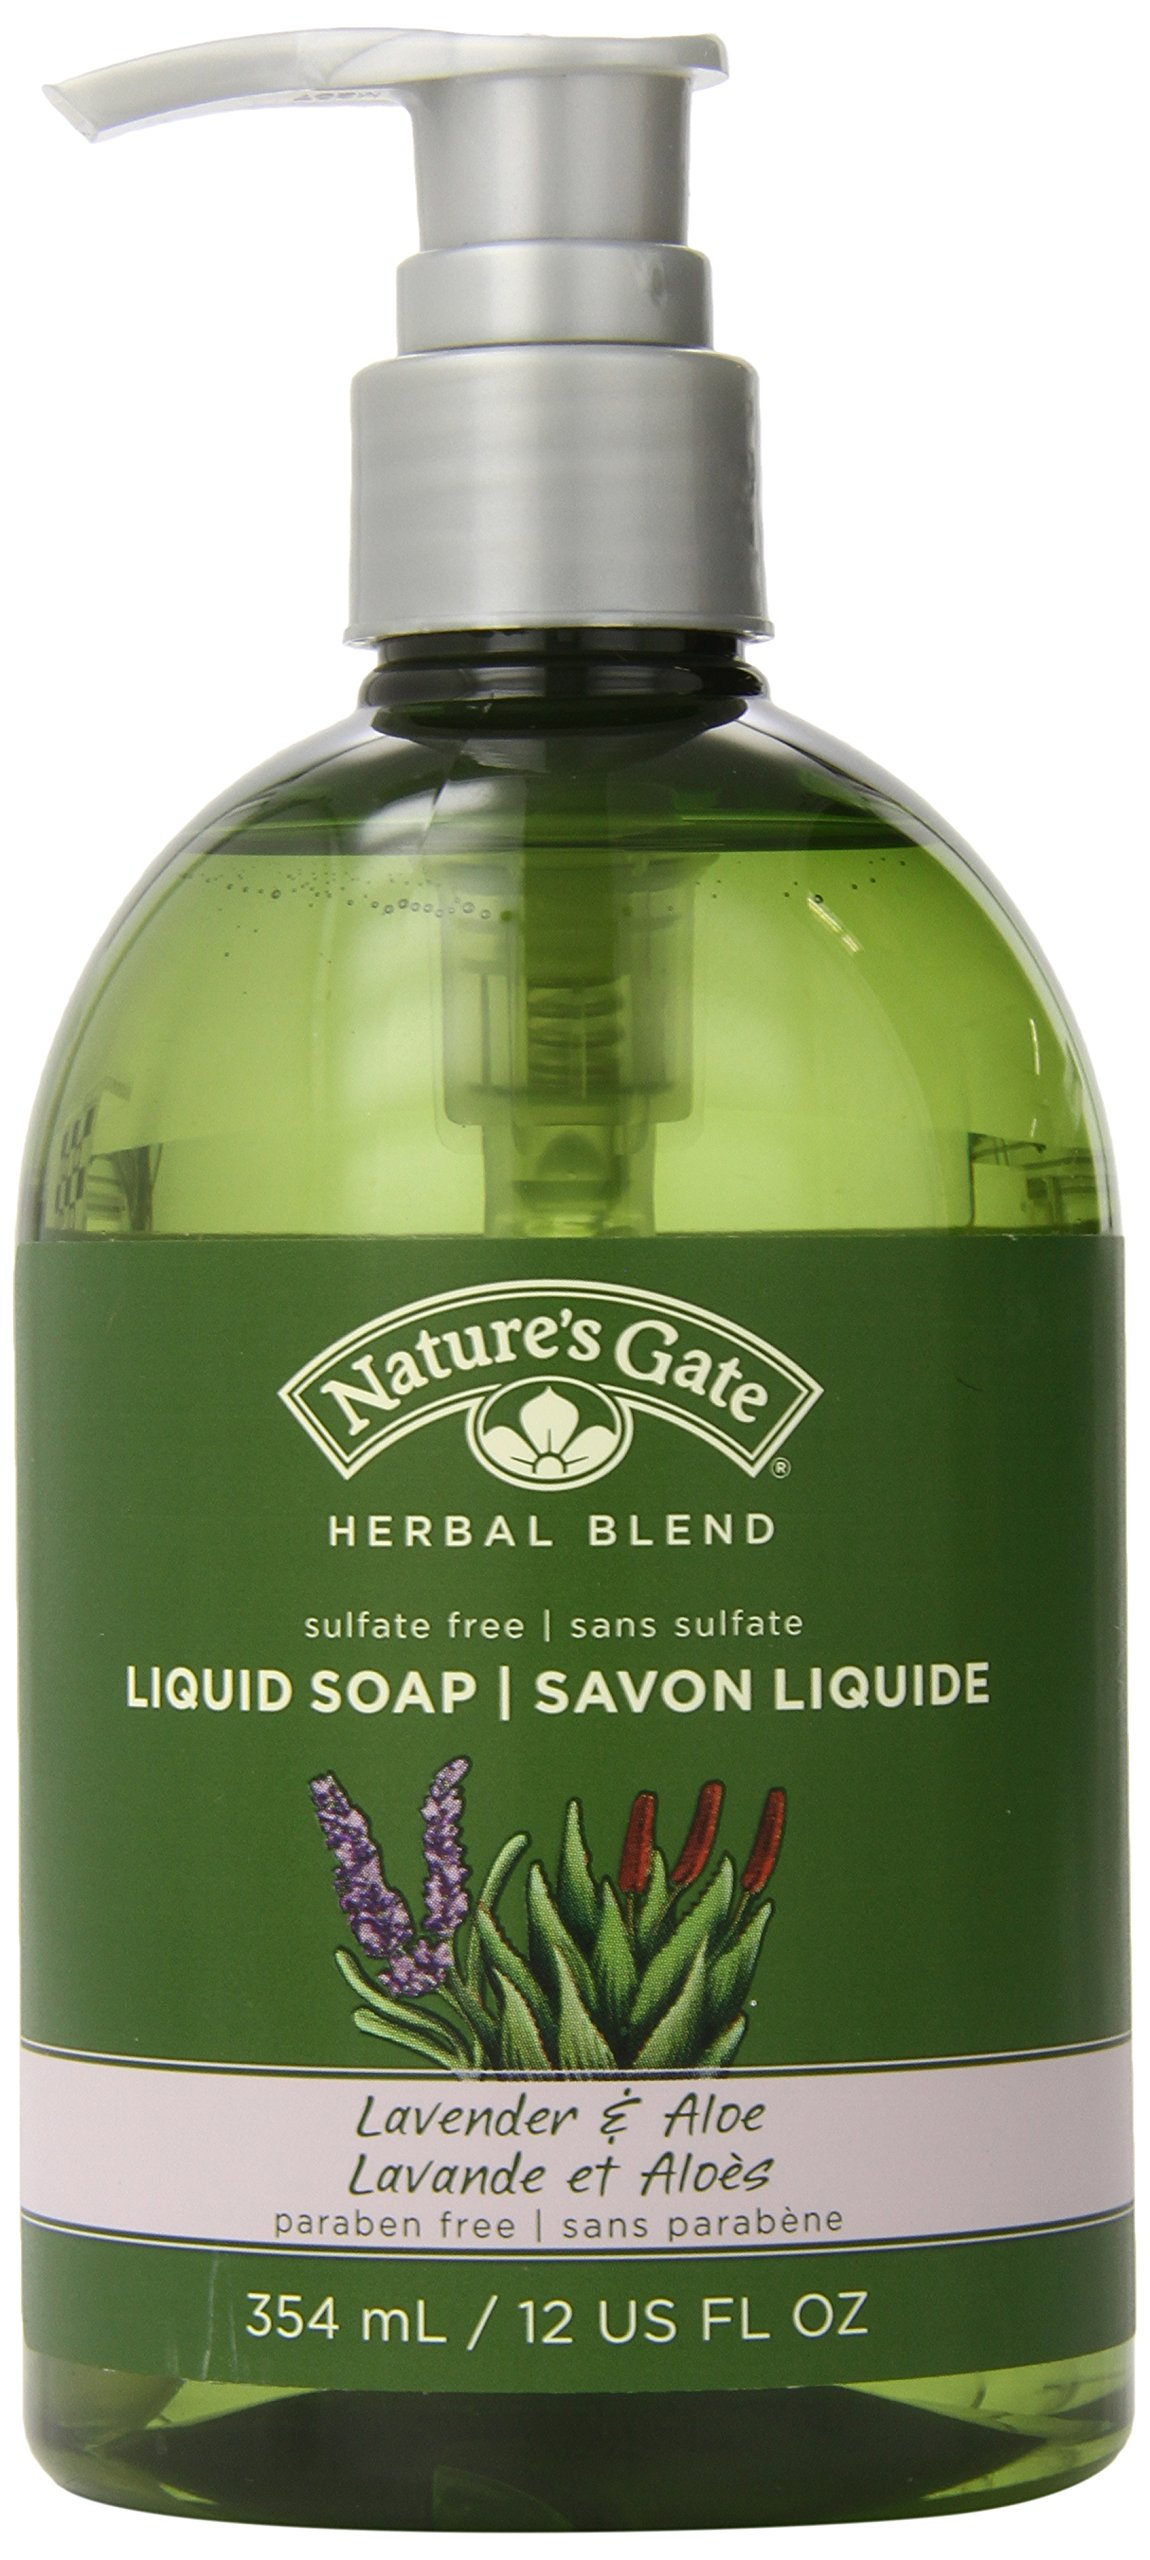 Nature's Gate Natural Organic Lavender and Aloe Herbal Blend Liquid Soap, Vegan, Paraben Free, Phthalate Free, Cruelty Free, Sulfate Free, 12 Ounce (Pack of 3)